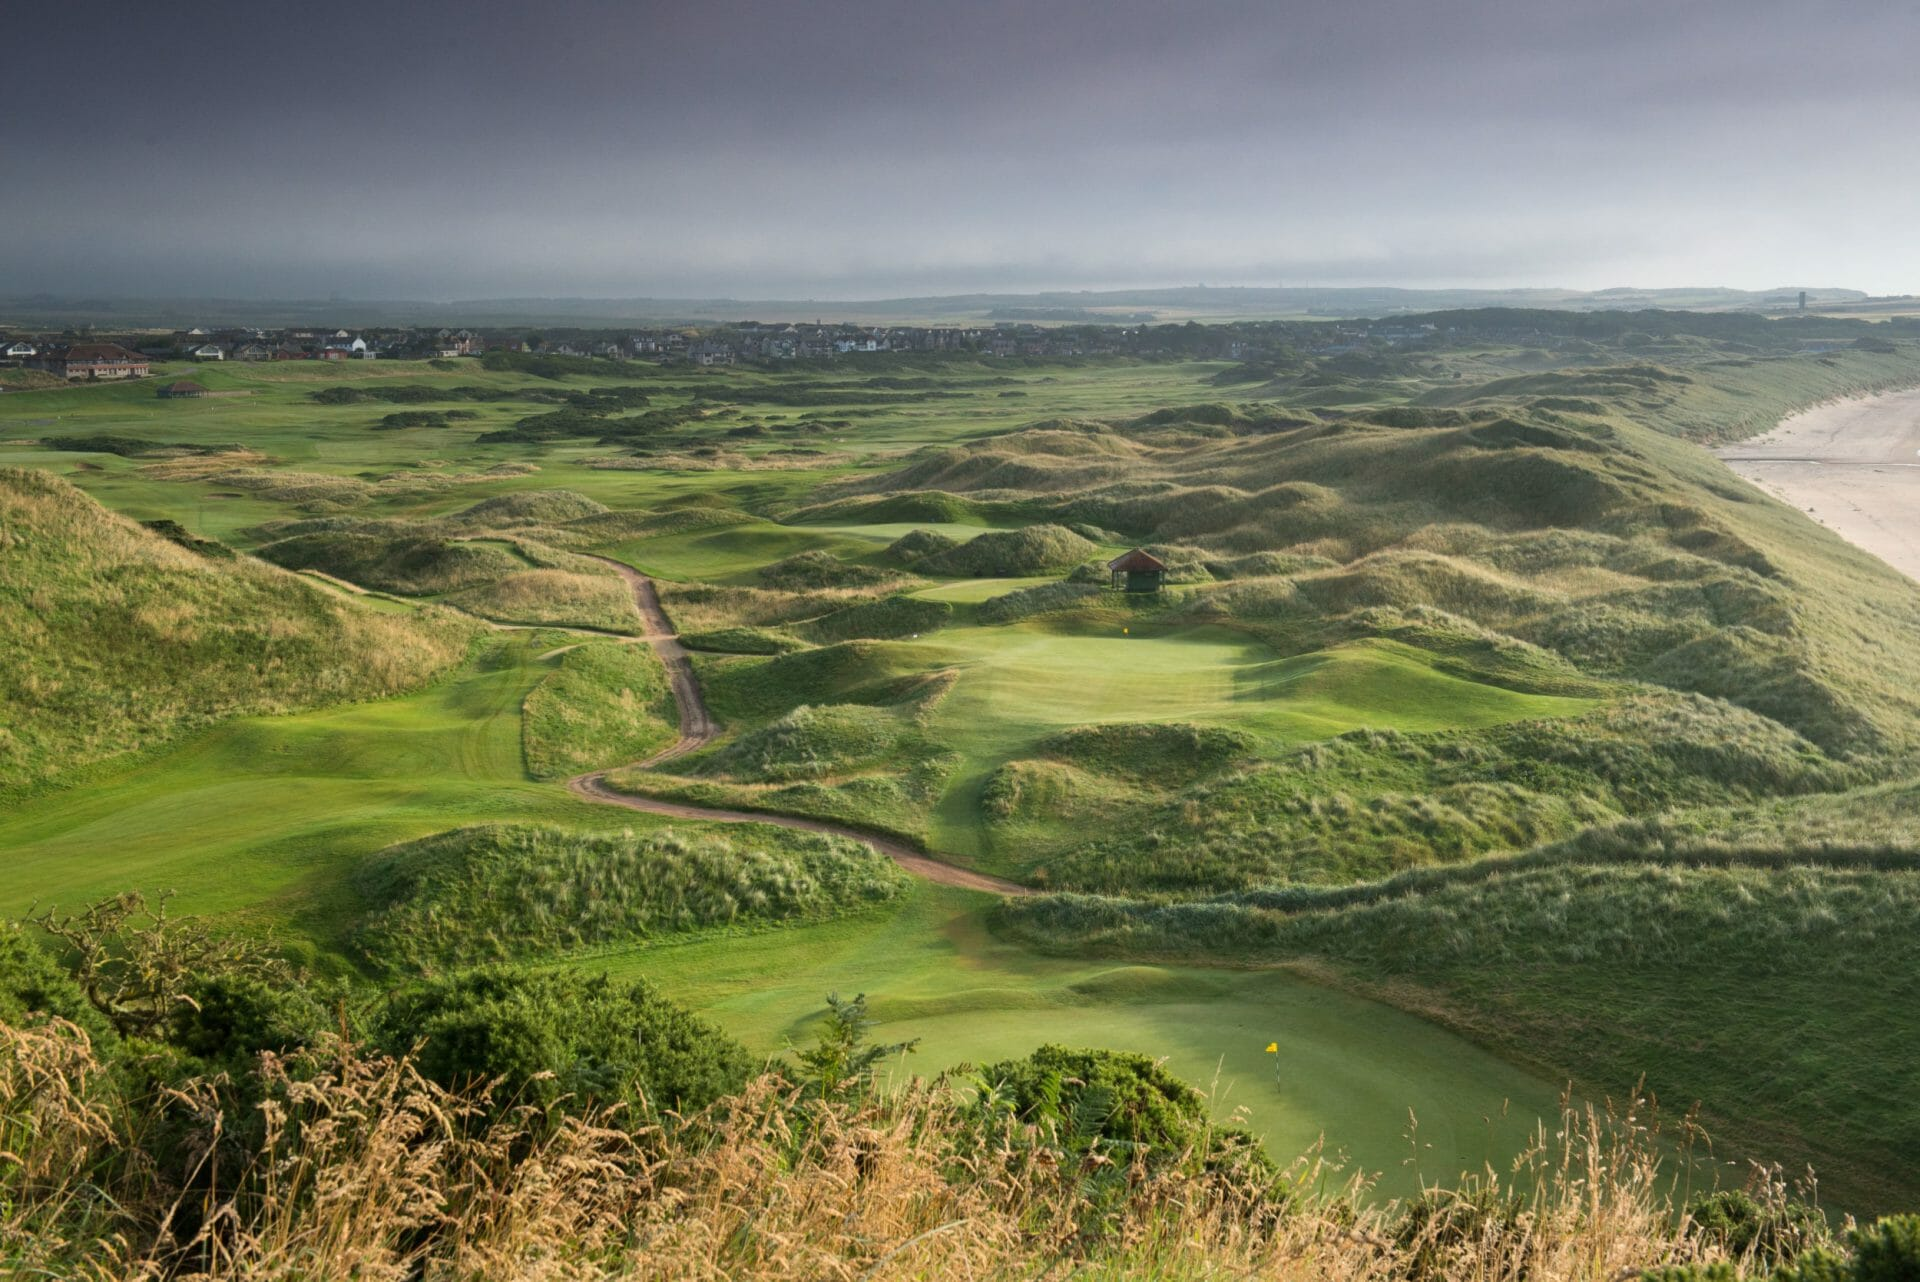 Image taken from a tee box looking down on the links golf course at Cruden Bay Golf course, Aberdeenshire, Scotland